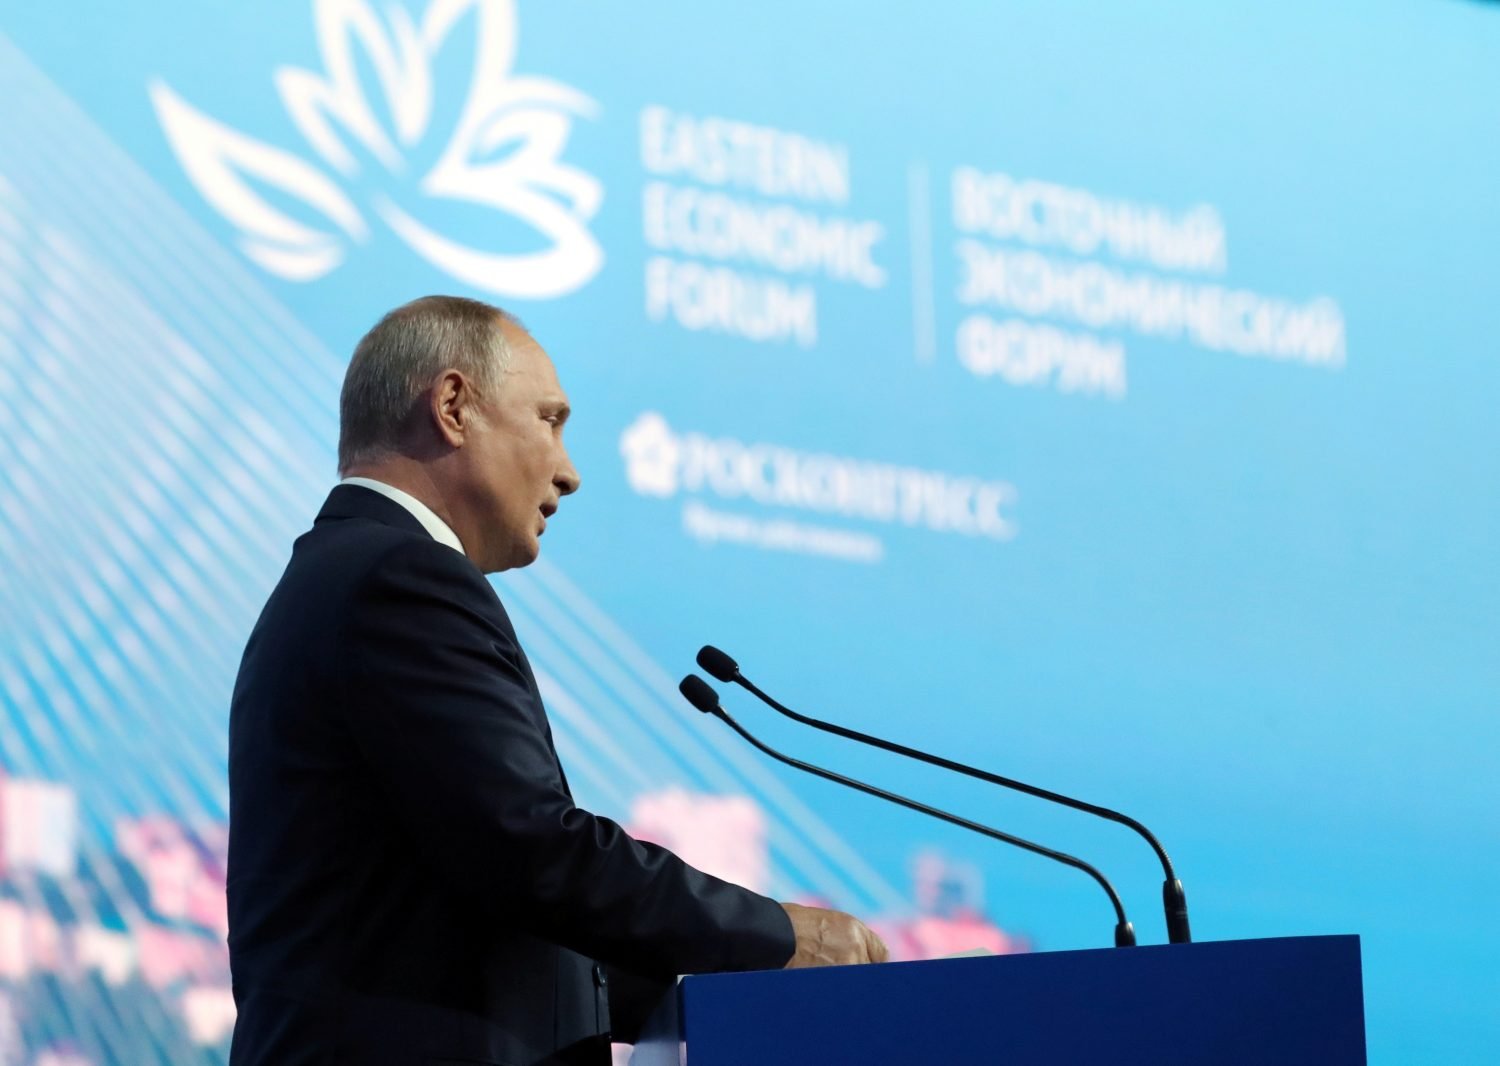 Russian President Vladimir Putin delivers a speech during a plenary session of the Eastern Economic Forum in Vladivostok, Russia September 5, 2019. Sputnik/Mikhail Klimentyev/Kremlin via REUTERS